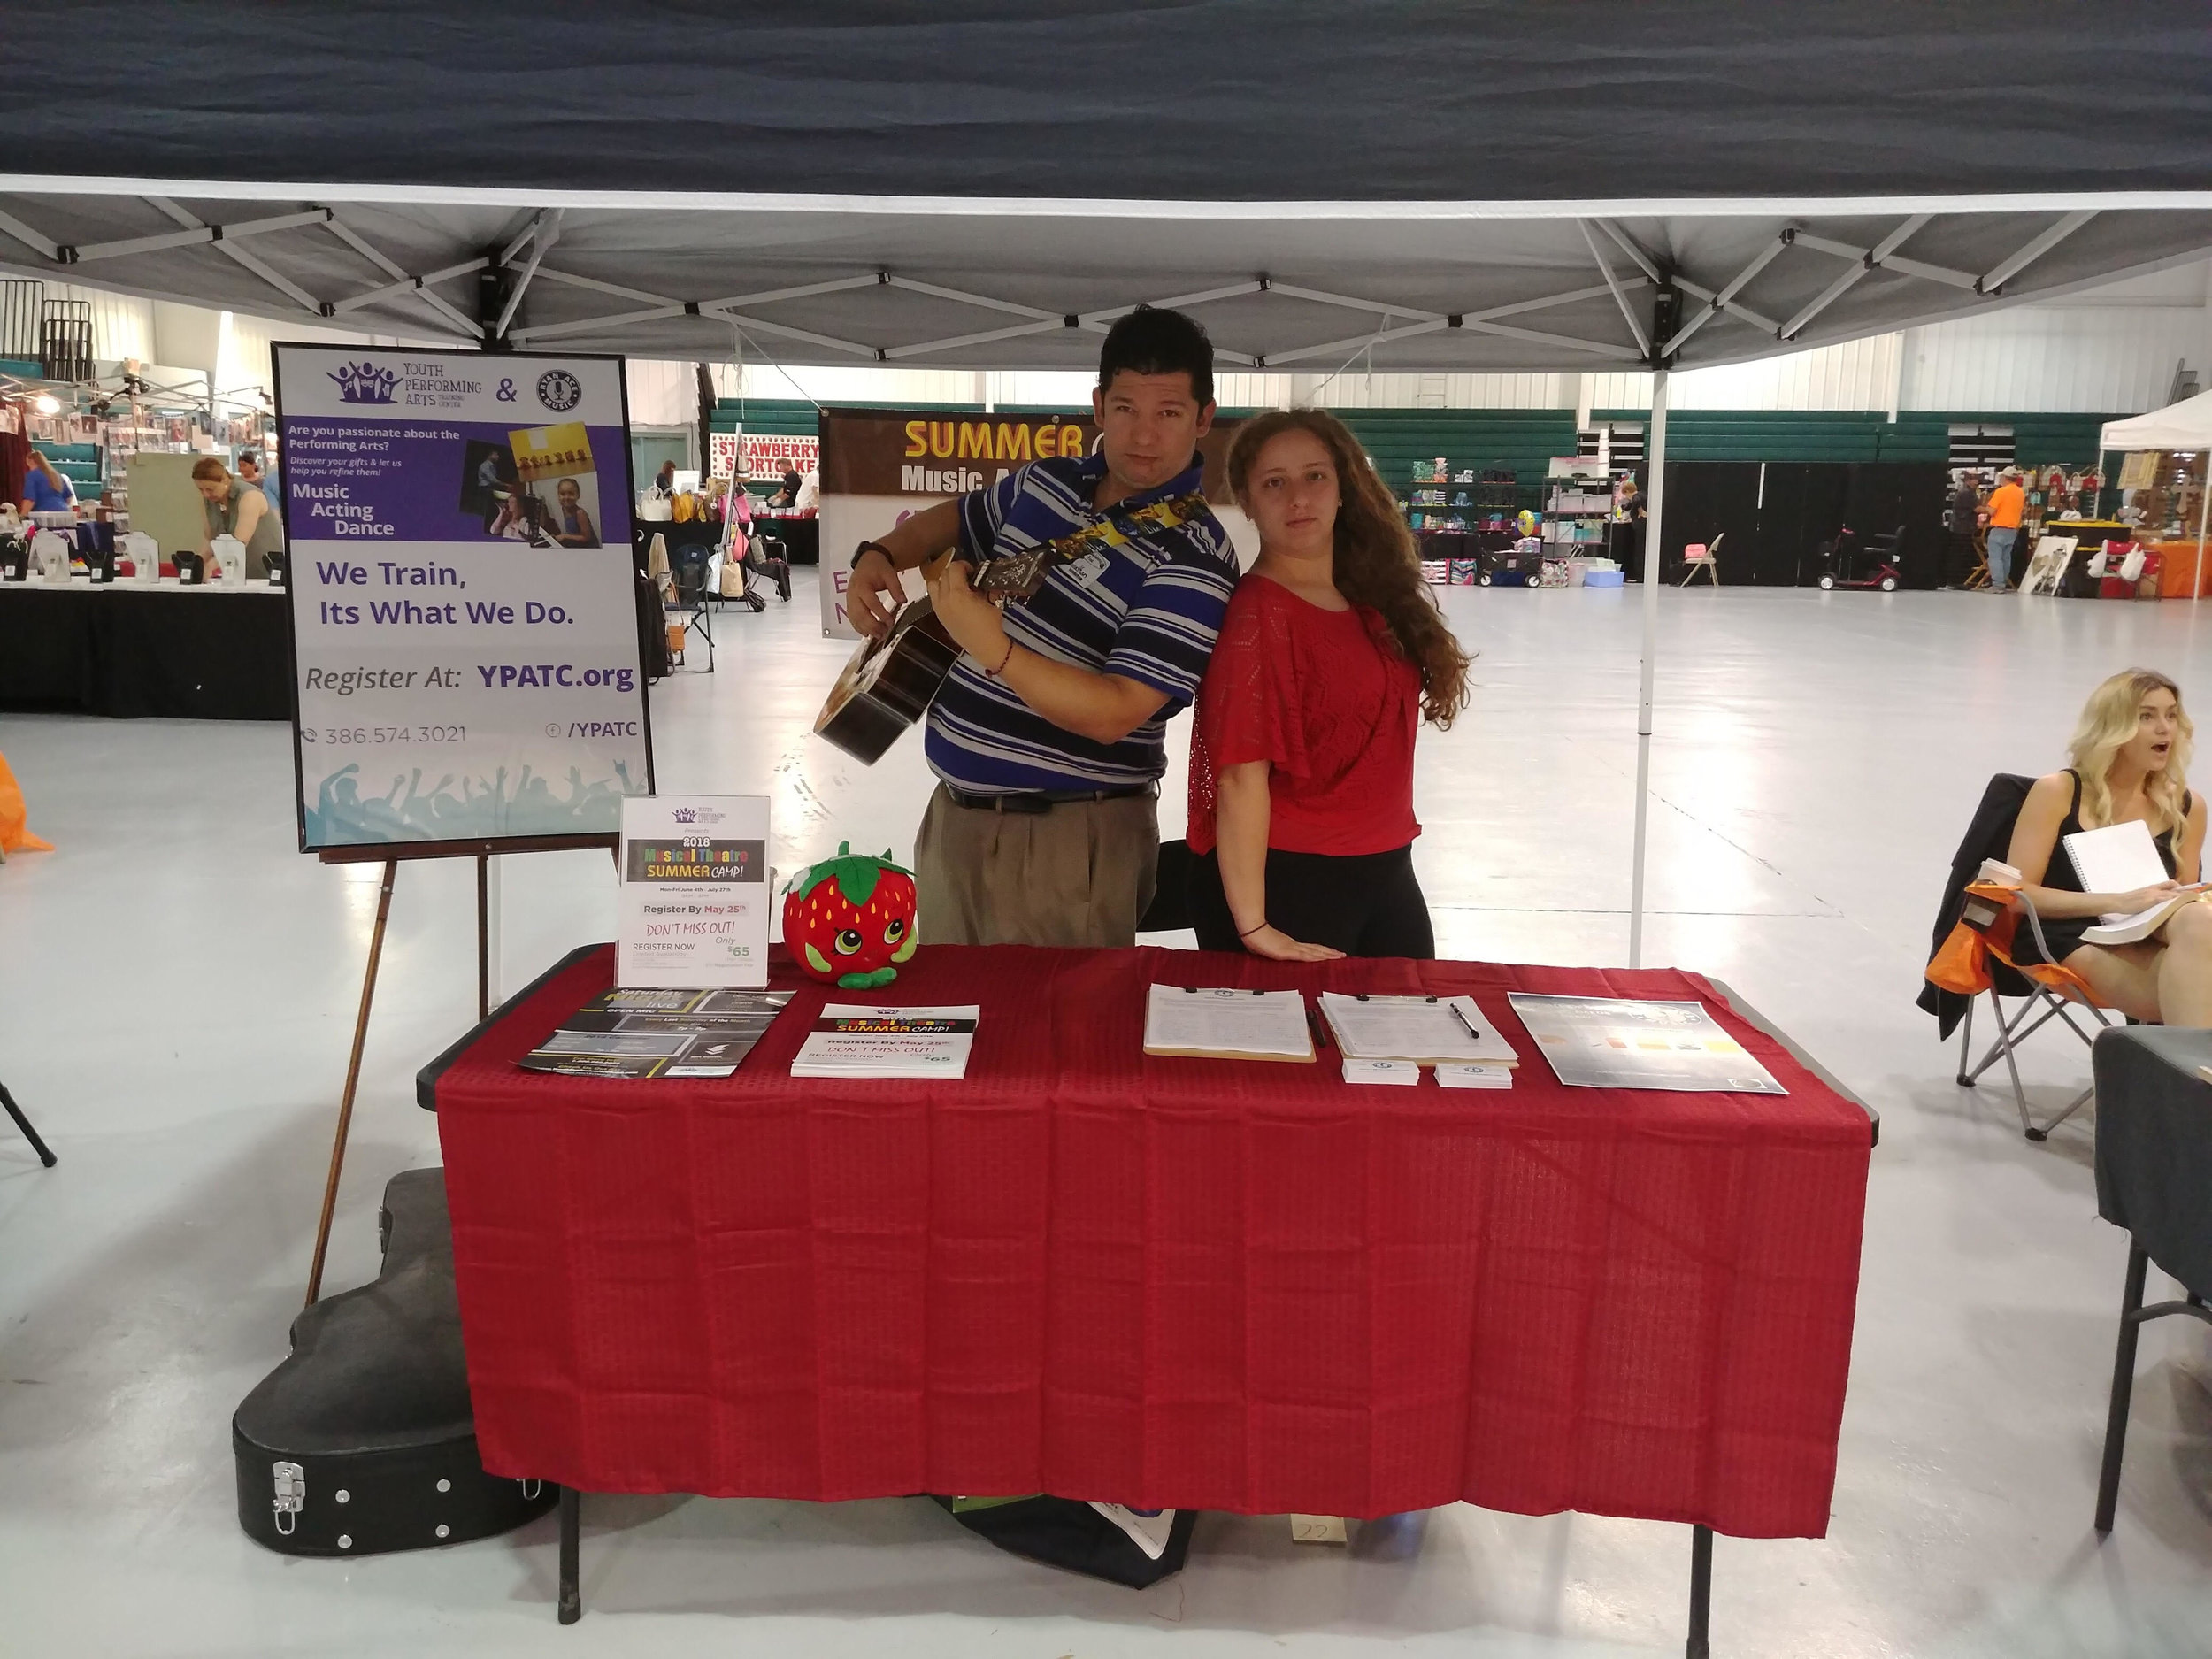 Did you see us? - Ryan Ace Music and the group were at the Strawberry Fest this past weekend!